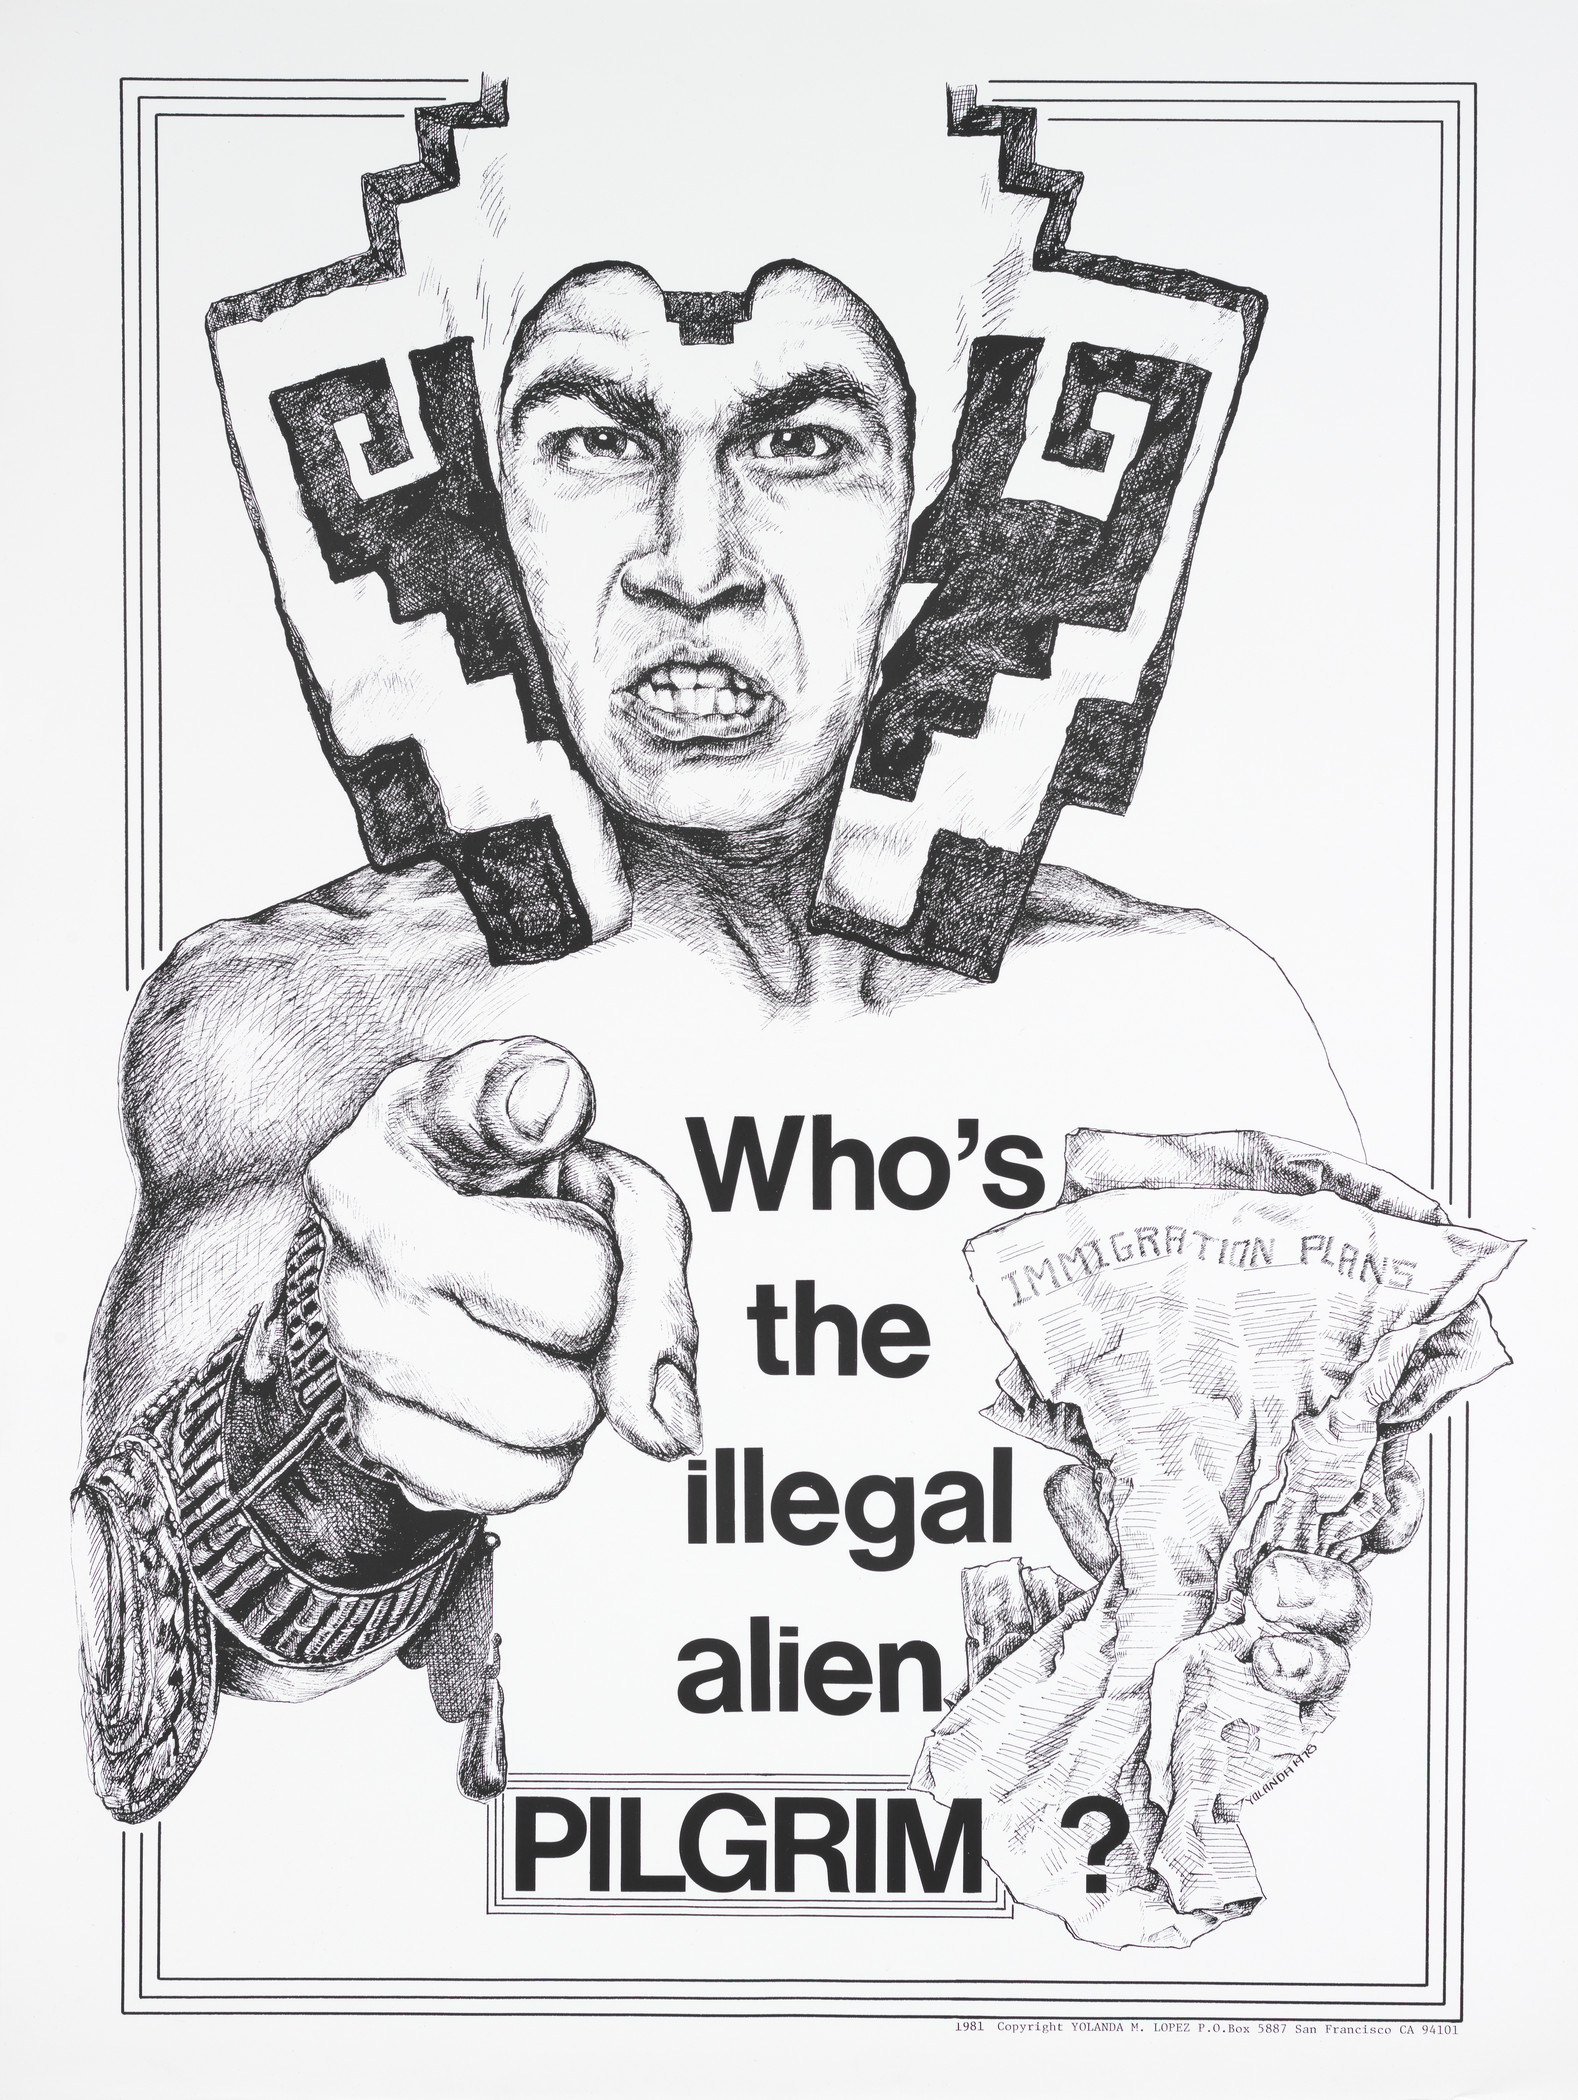 Yolanda M. López's poster, Who's the illegal alien, Pilgrim